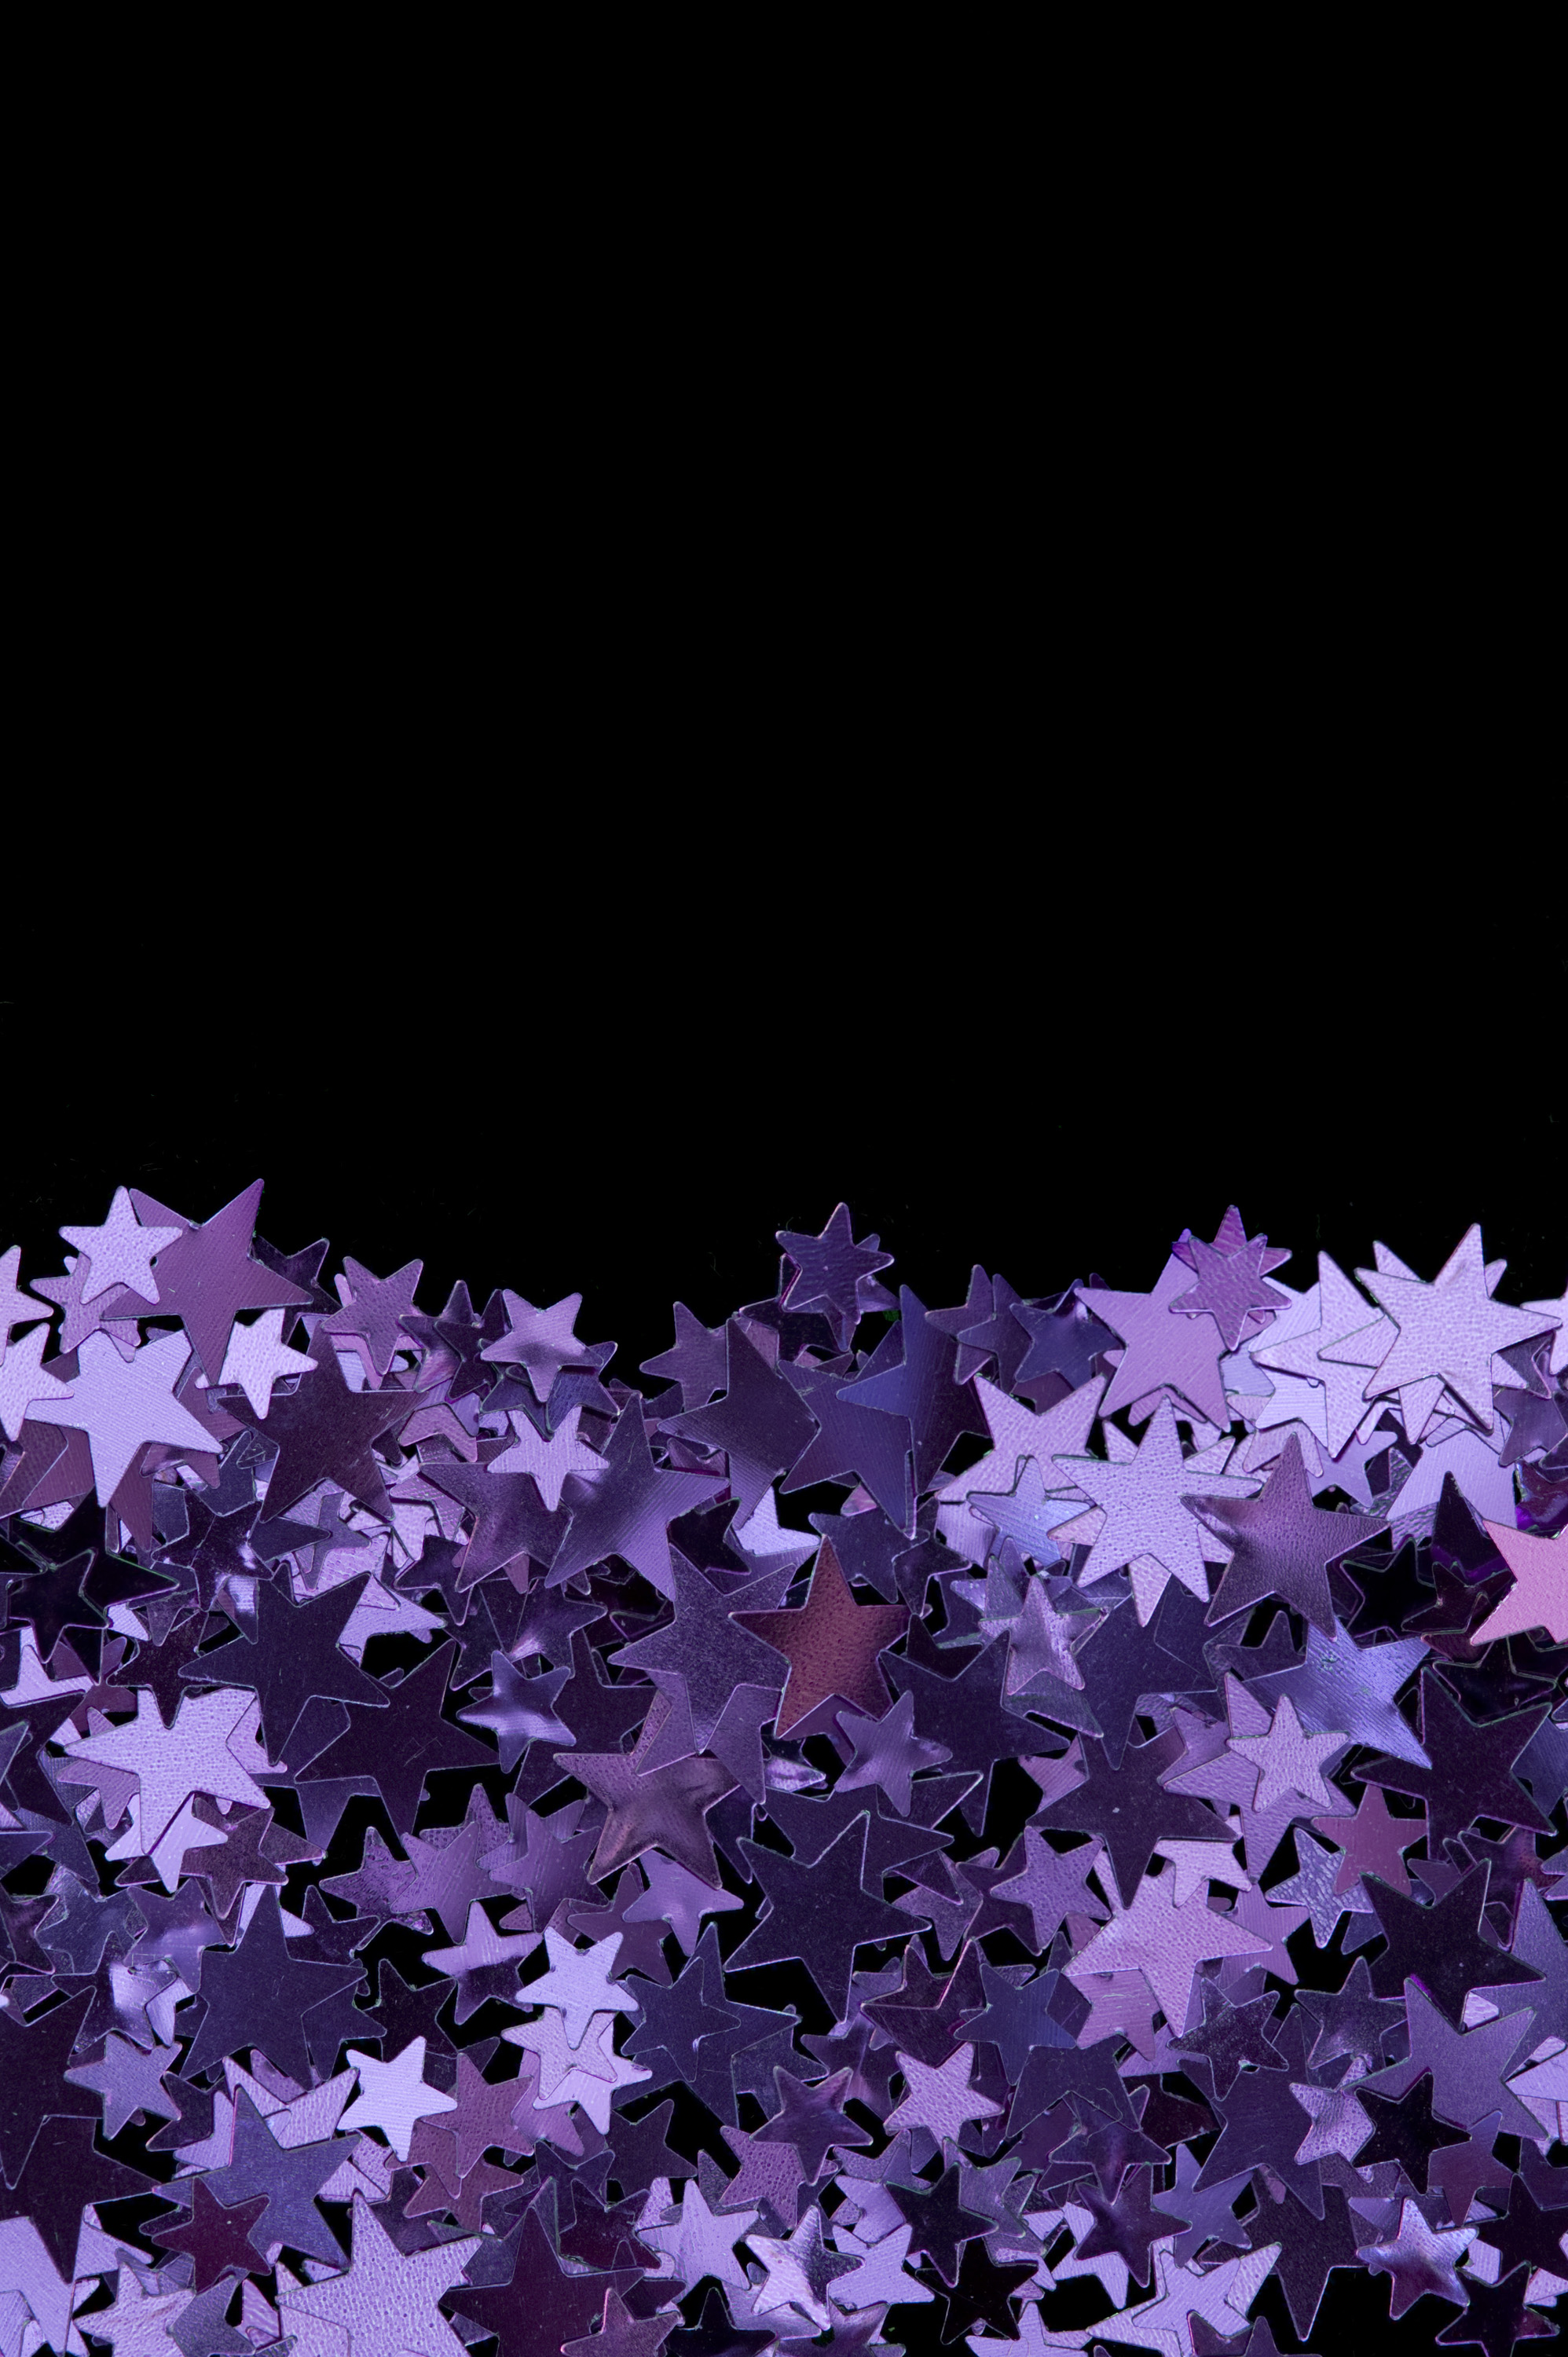 a frame half filled with colourful reflective purple star shapes of various sizes and the remainder left blank for copy